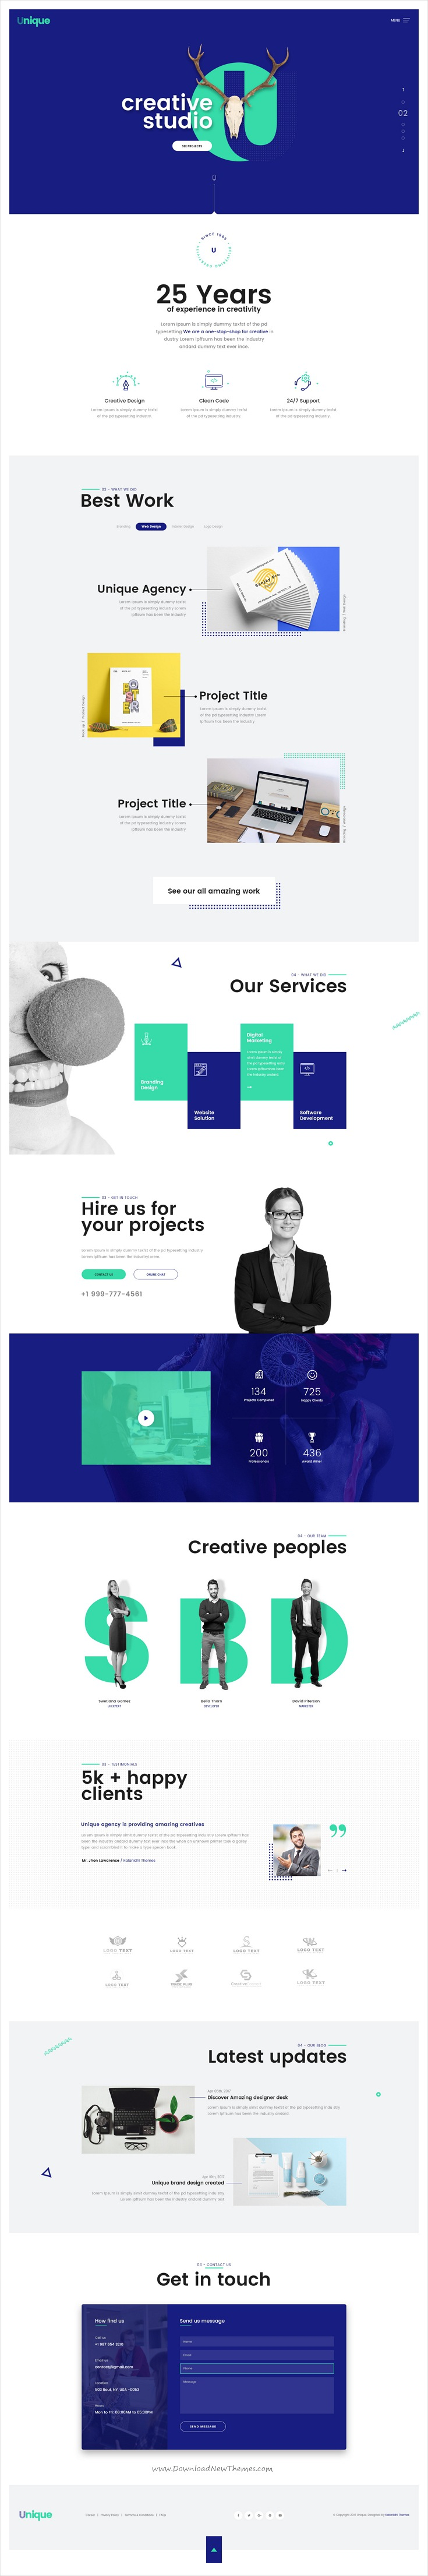 Unique  Creative Agency Landing Page Psd  Professional Website